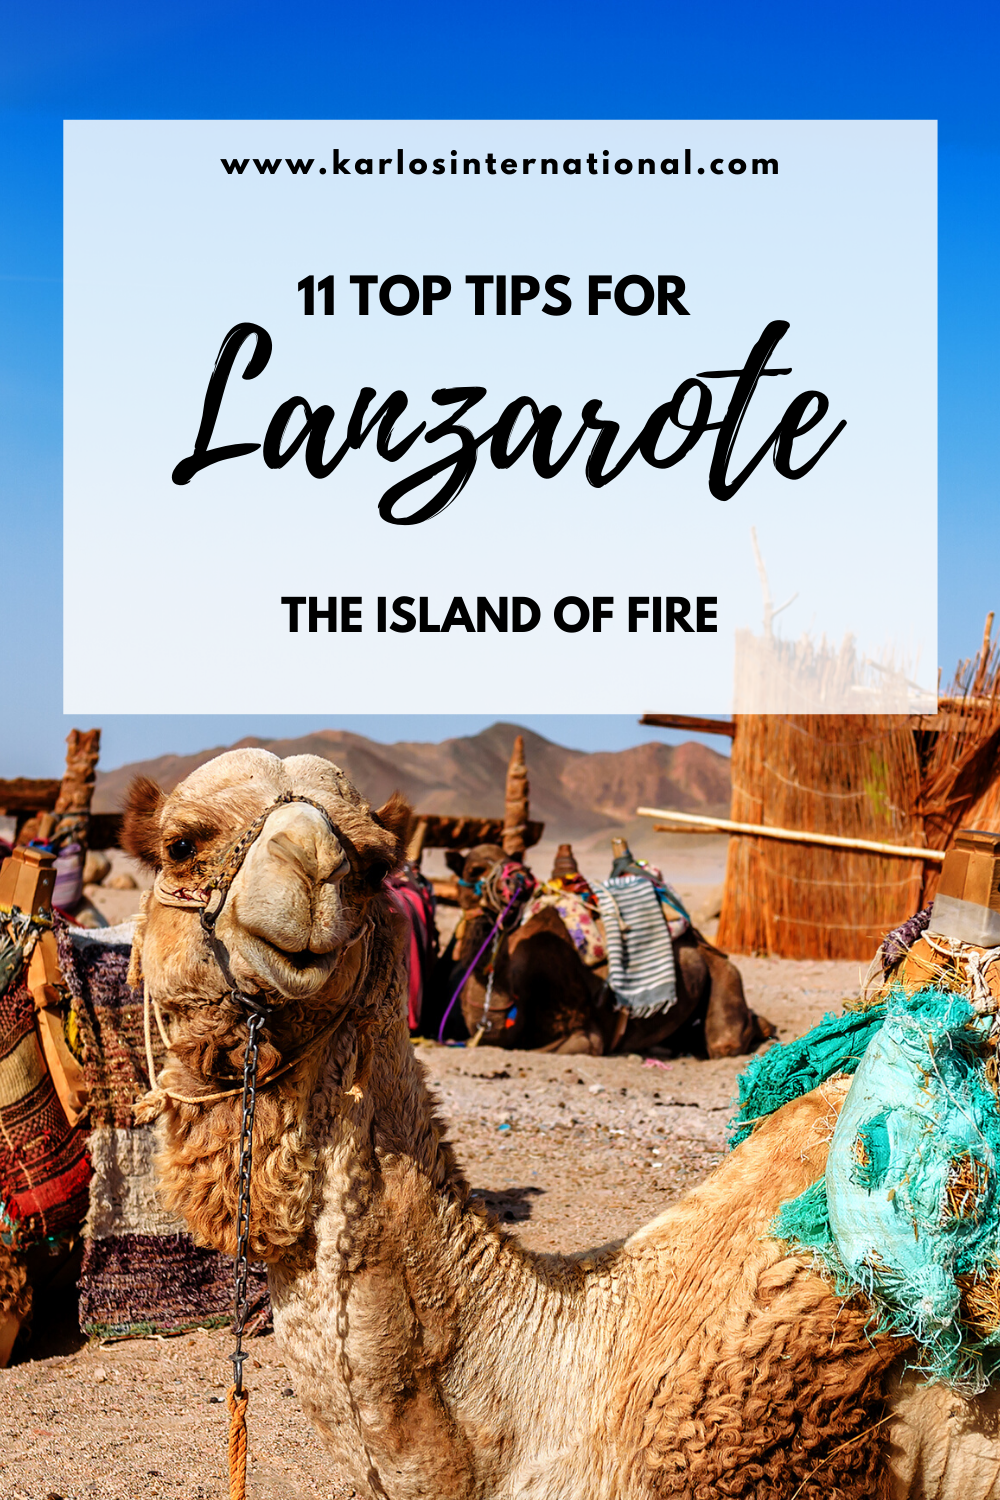 11 Top Tips when travelling to Lanzarote, the Canary Islands.  #Lanzarote #Travel #Travelblogger #CanaryIslands #SPAIN